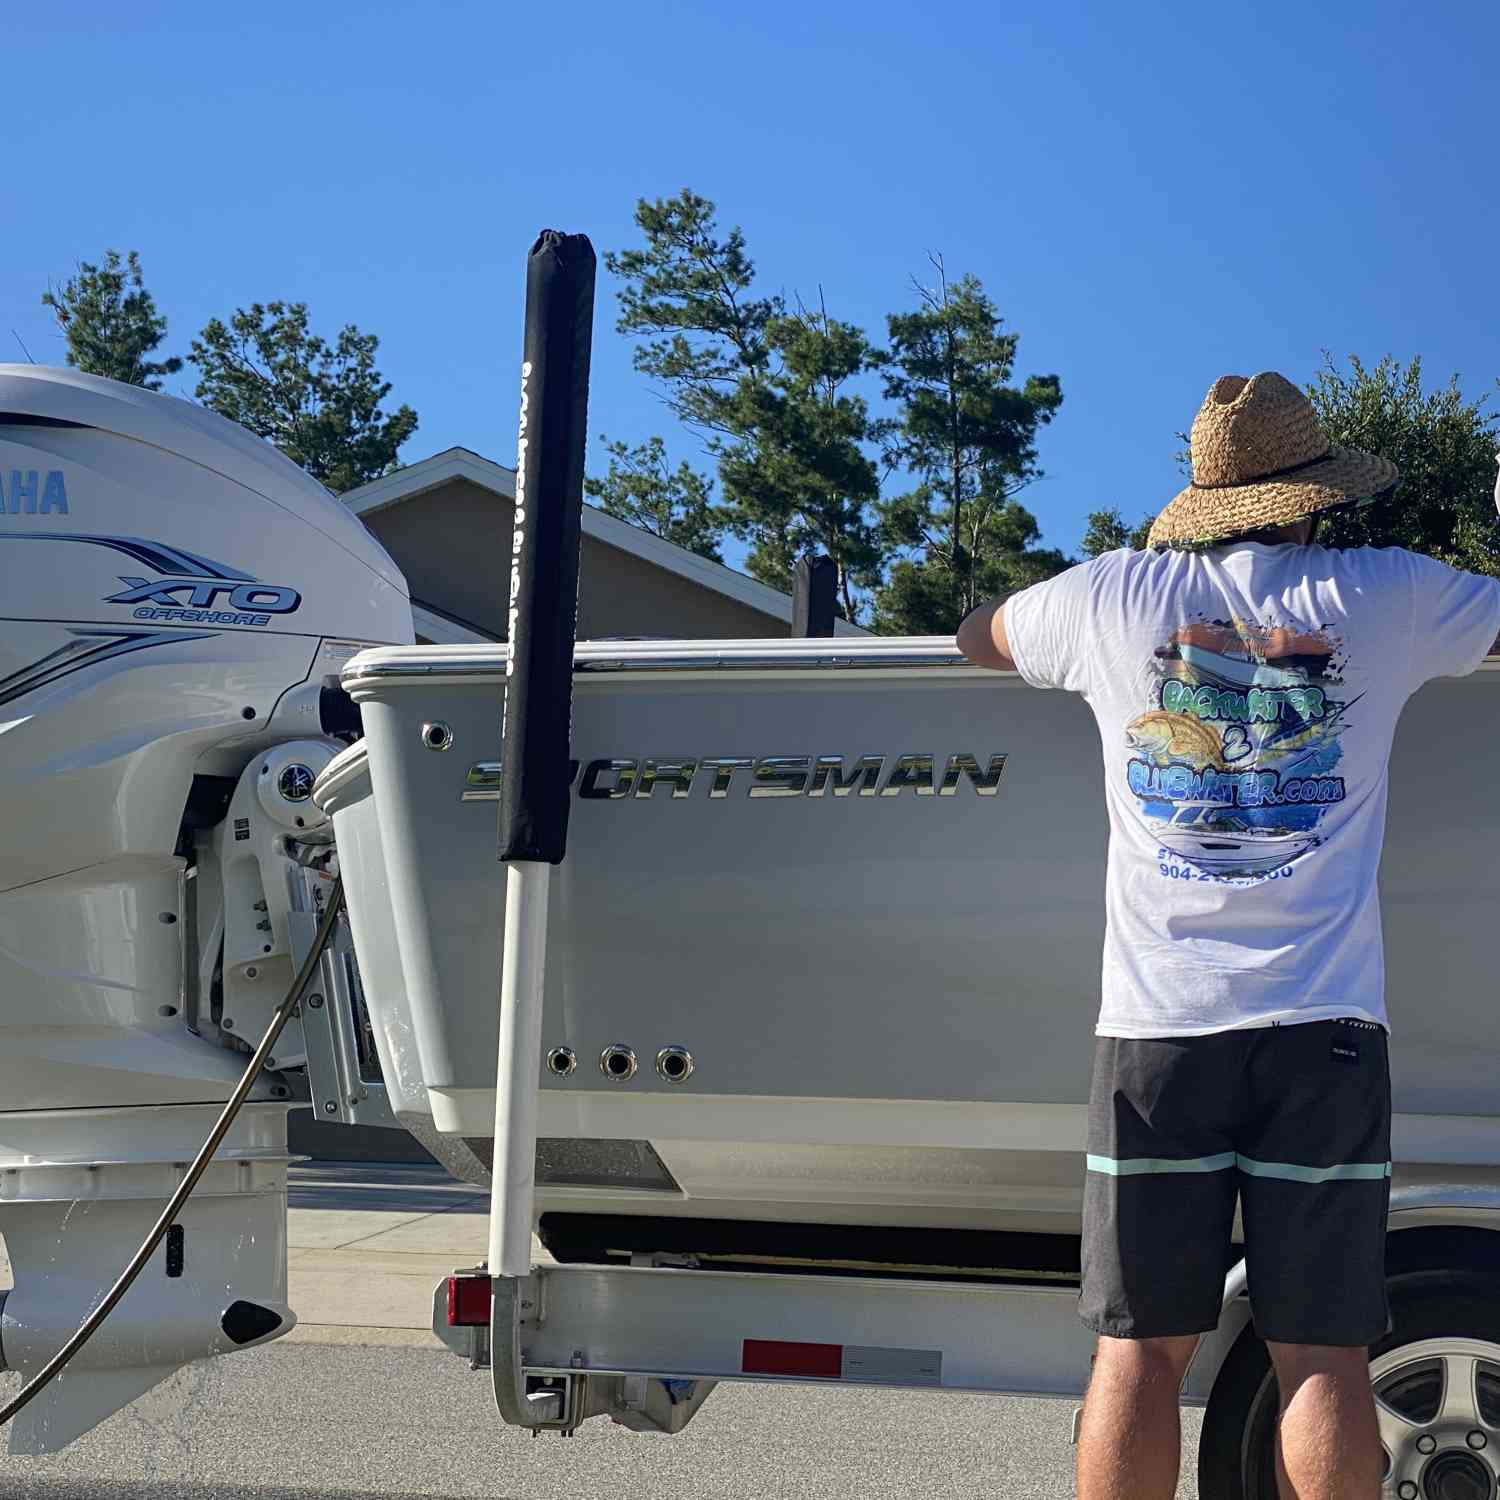 Just a man admiring his new boat.